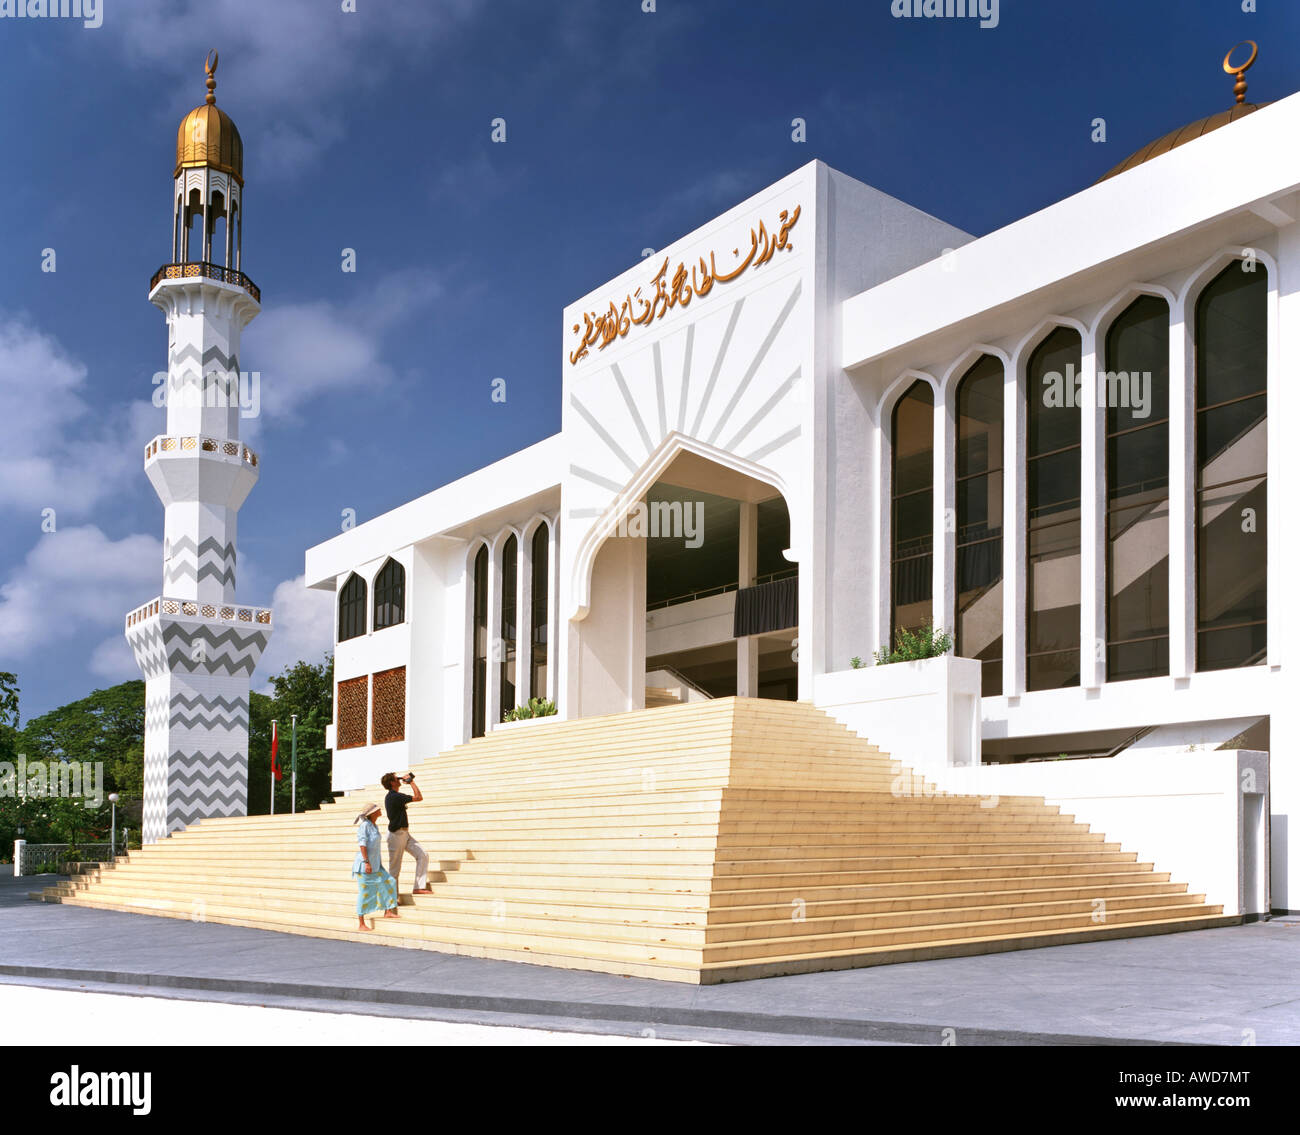 Friday Mosque, minaret and golden dome, tourists near entrance, Male (Dhivehi), Maldives, Indian Ocean - Stock Image